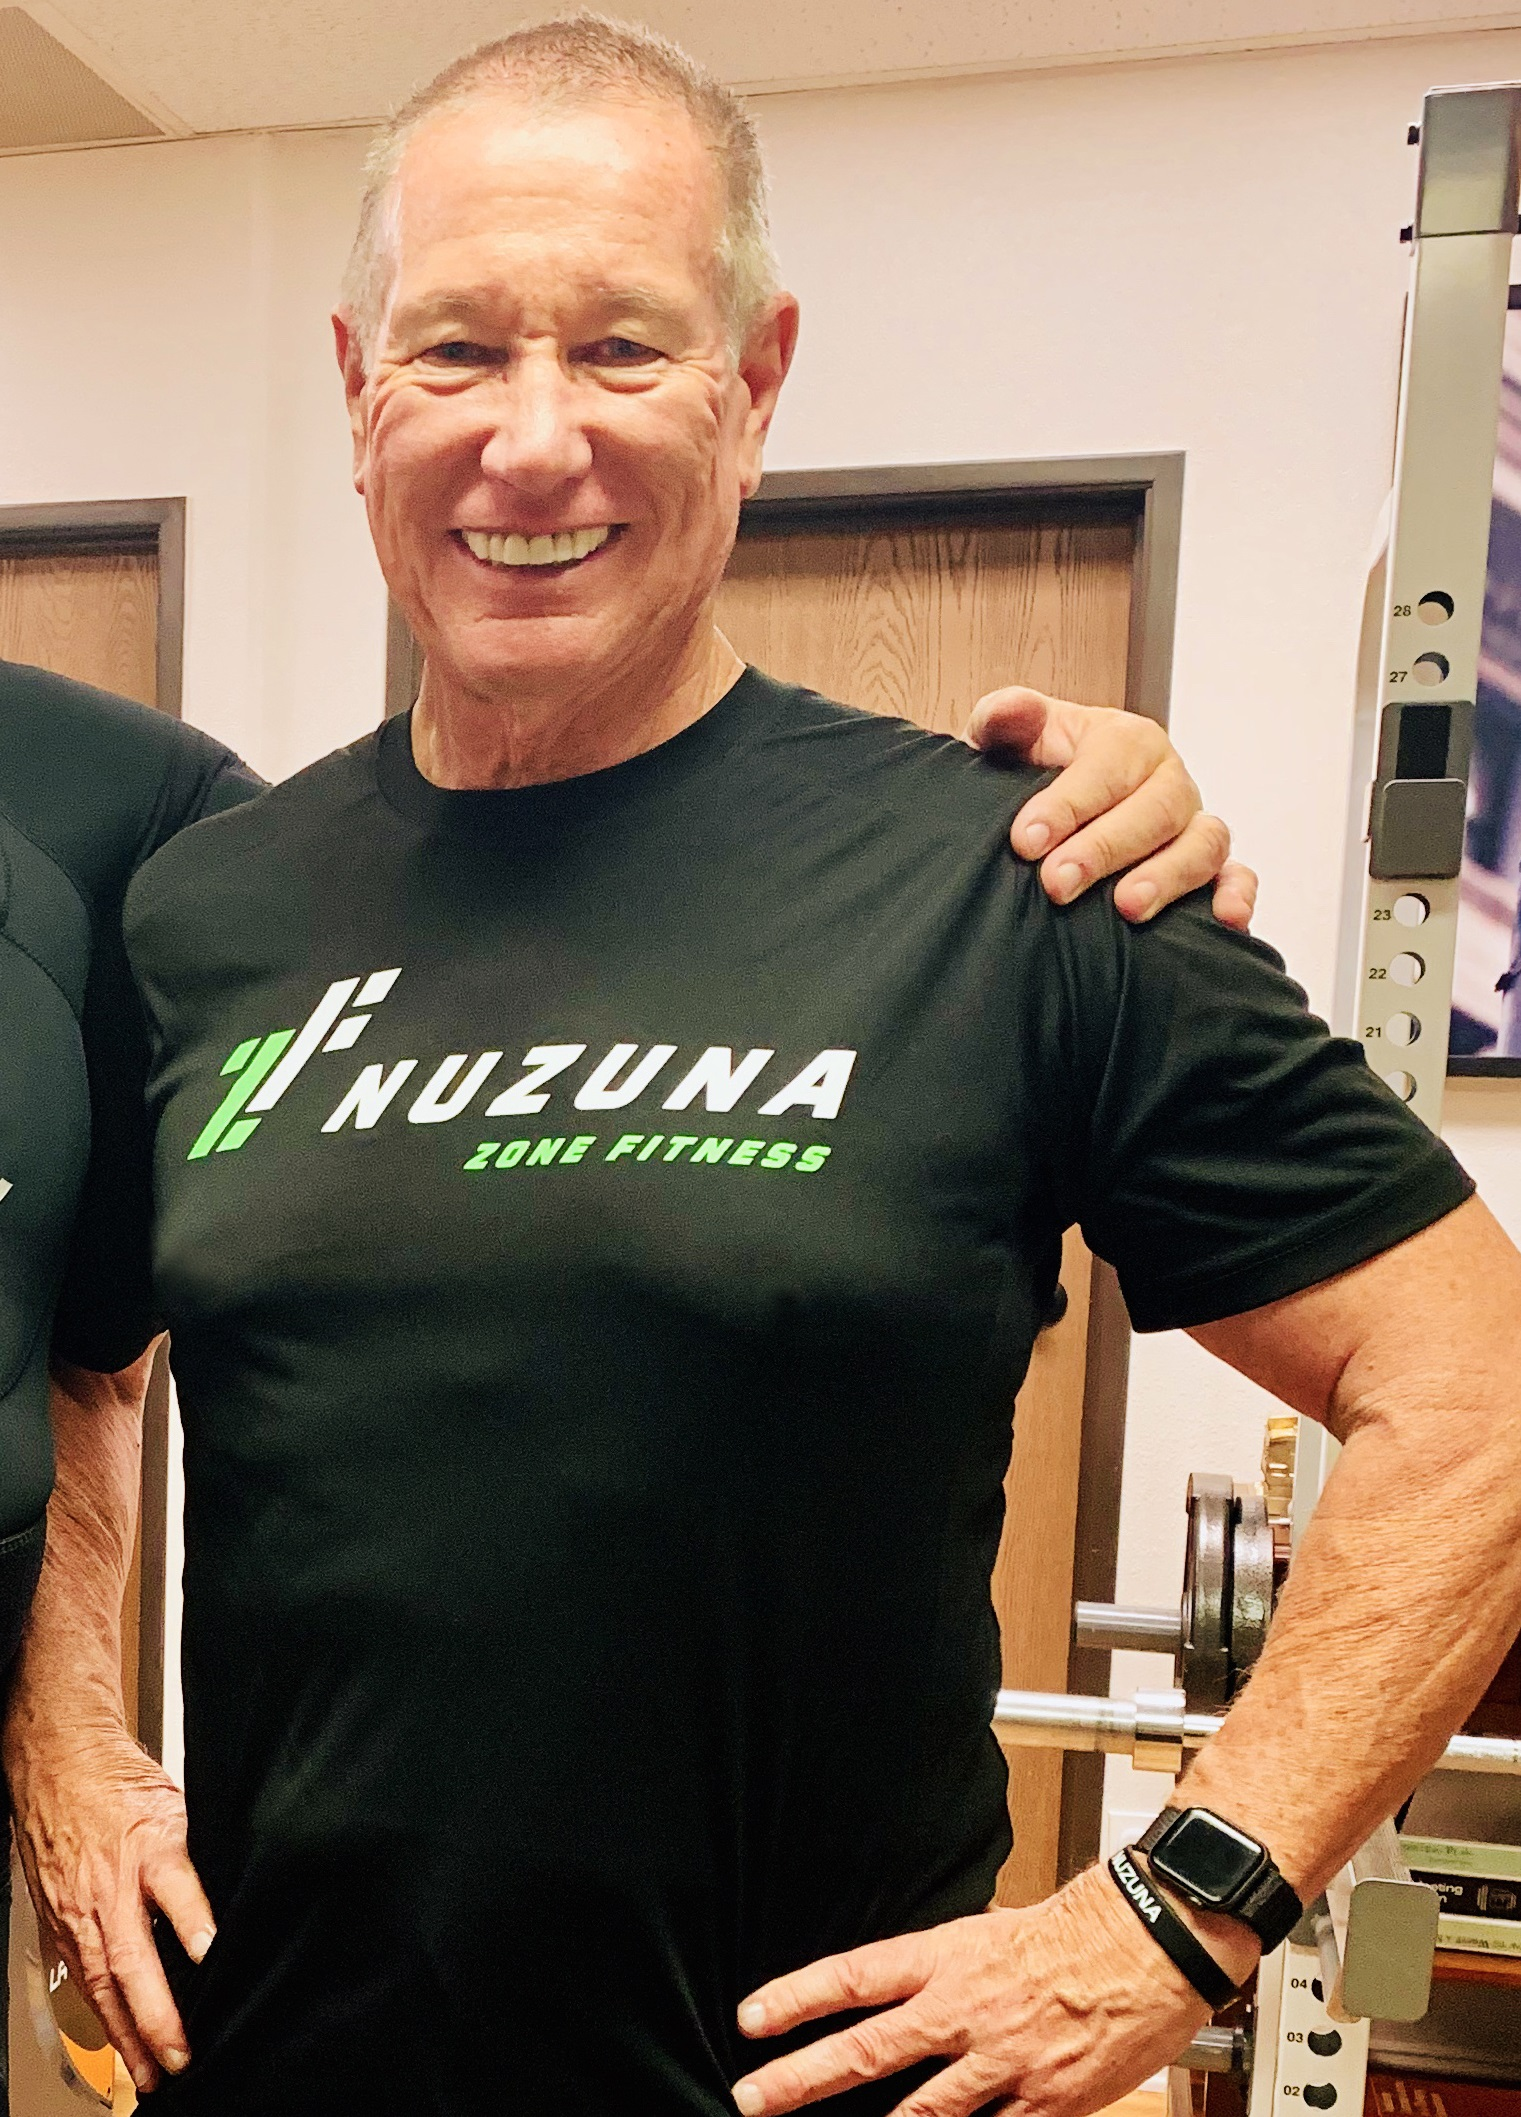 Charles Laverty Working out at Nuzuna in California